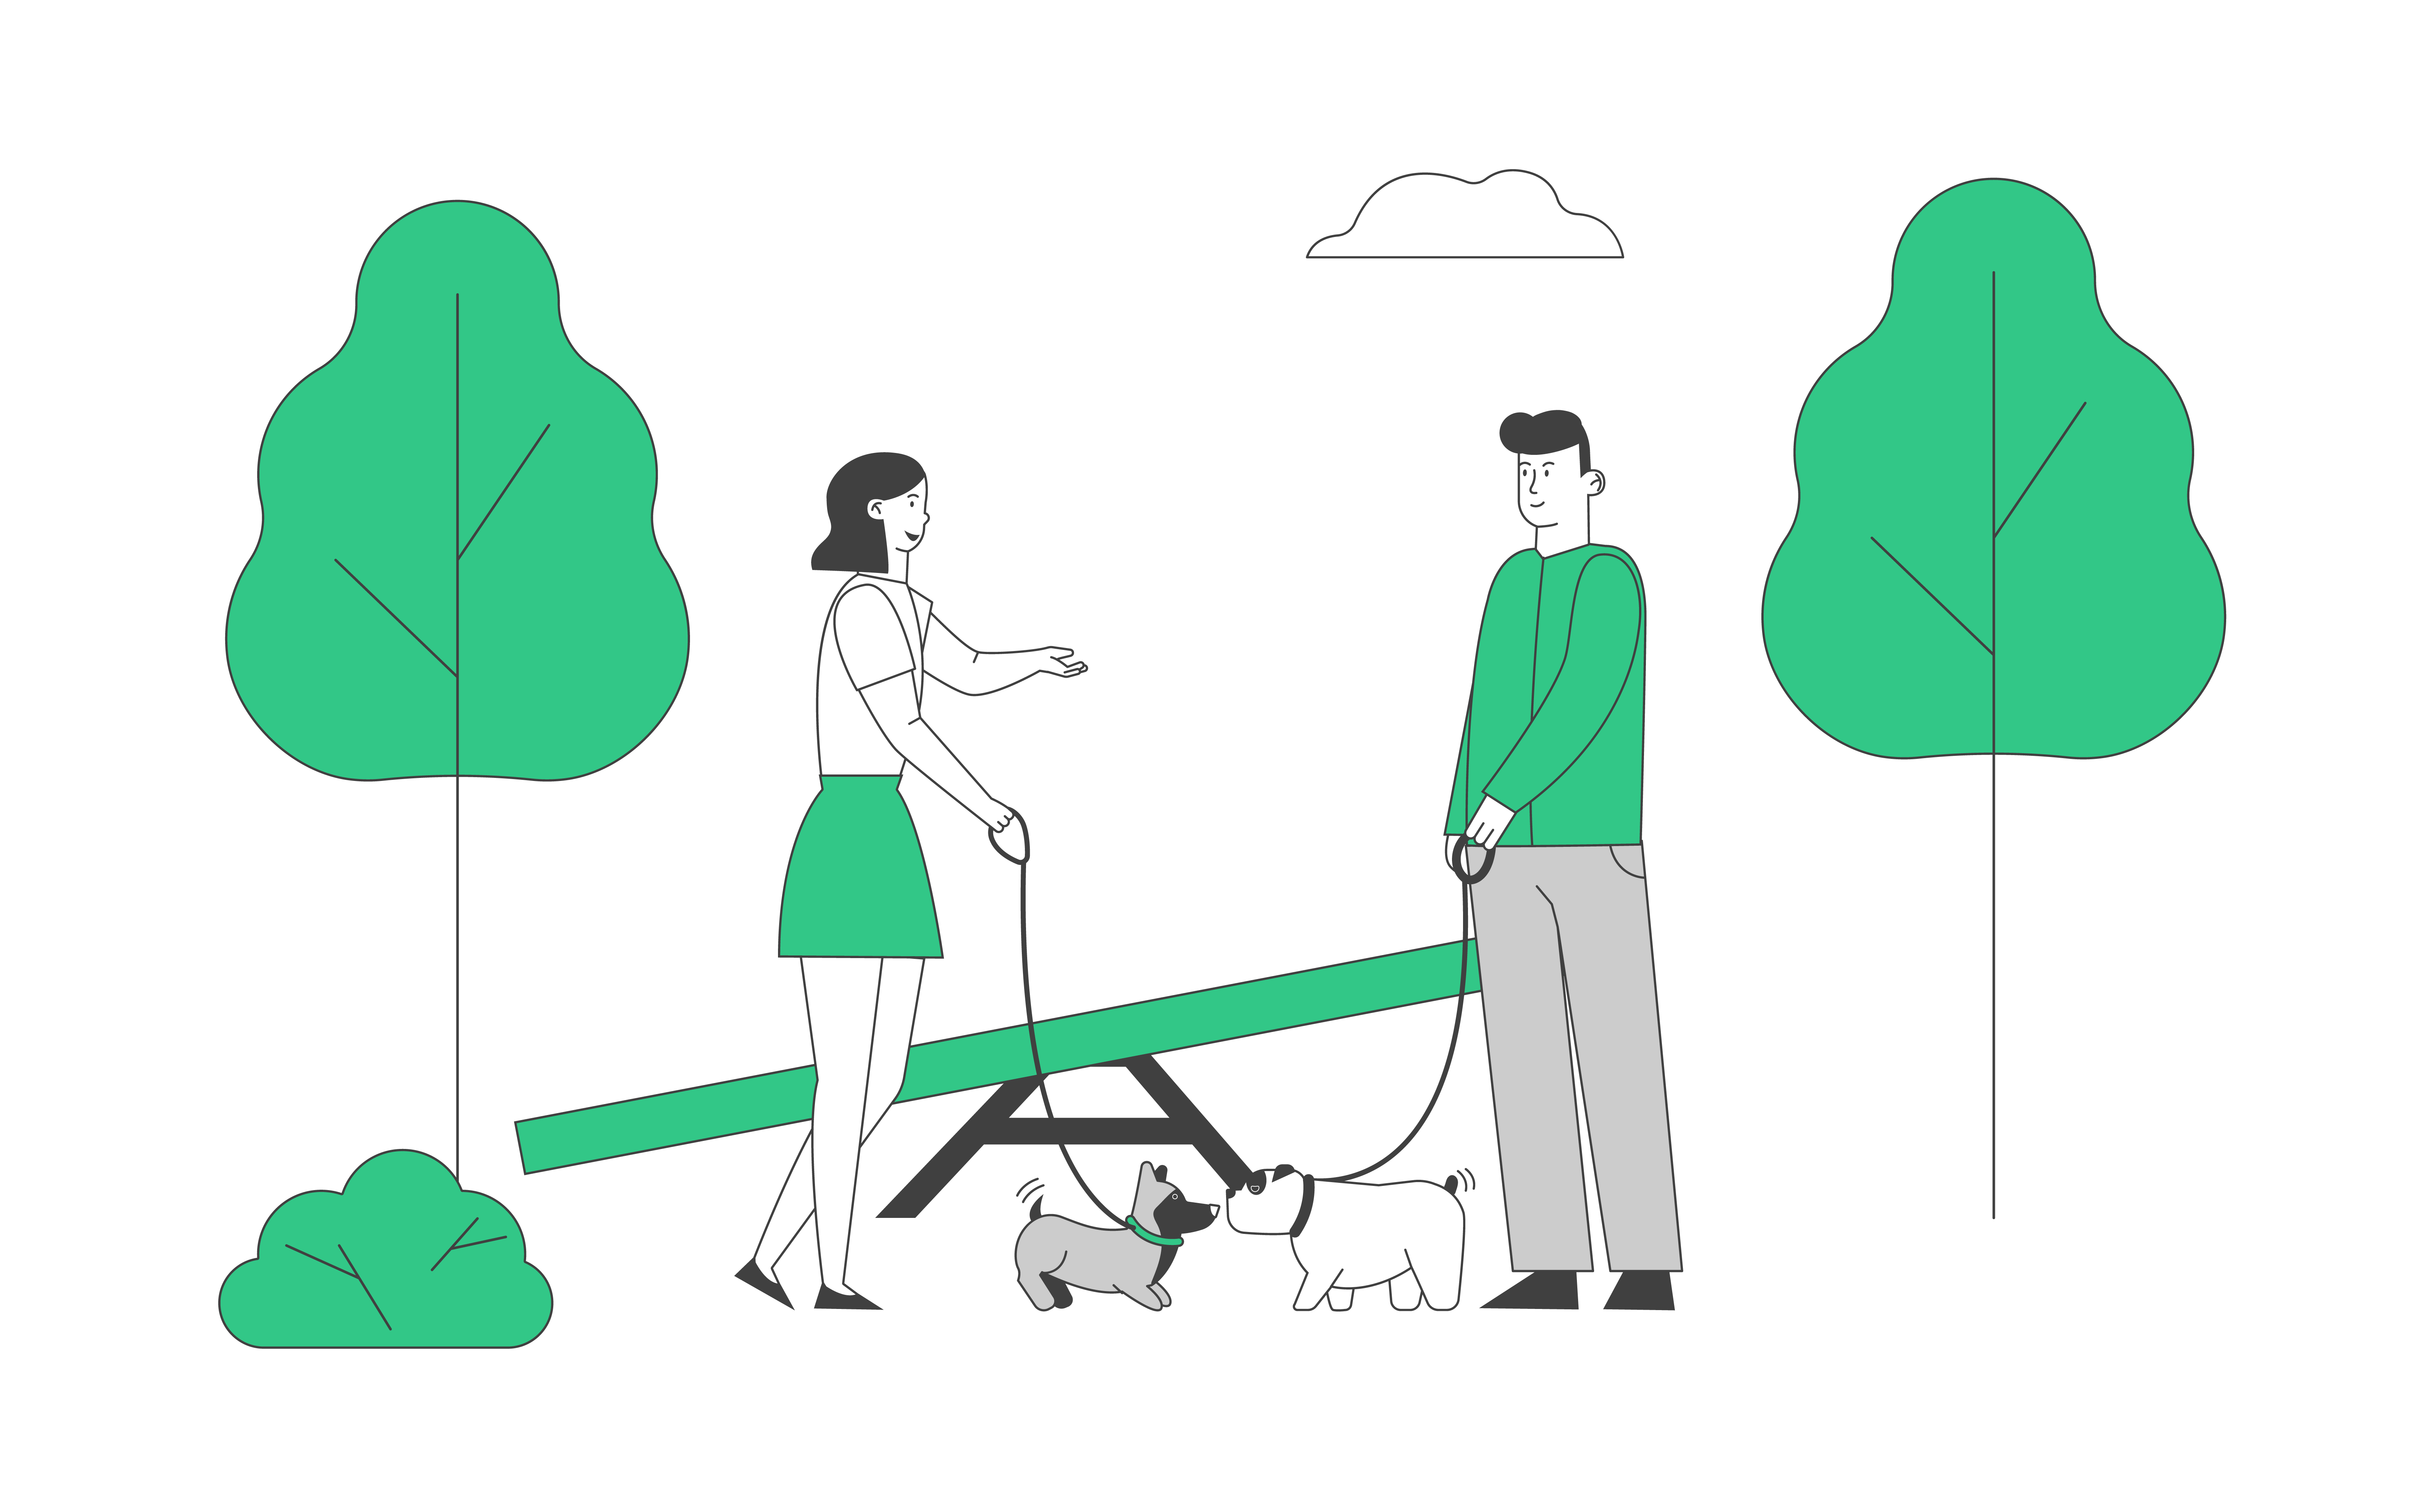 Male and Female Characters Walking with Dogs in Public City Park or Home Yard. People Spending Time with Pets Outdoors. Leisure, Communication with Animals Cartoon Flat Vector Illustration, Line Art